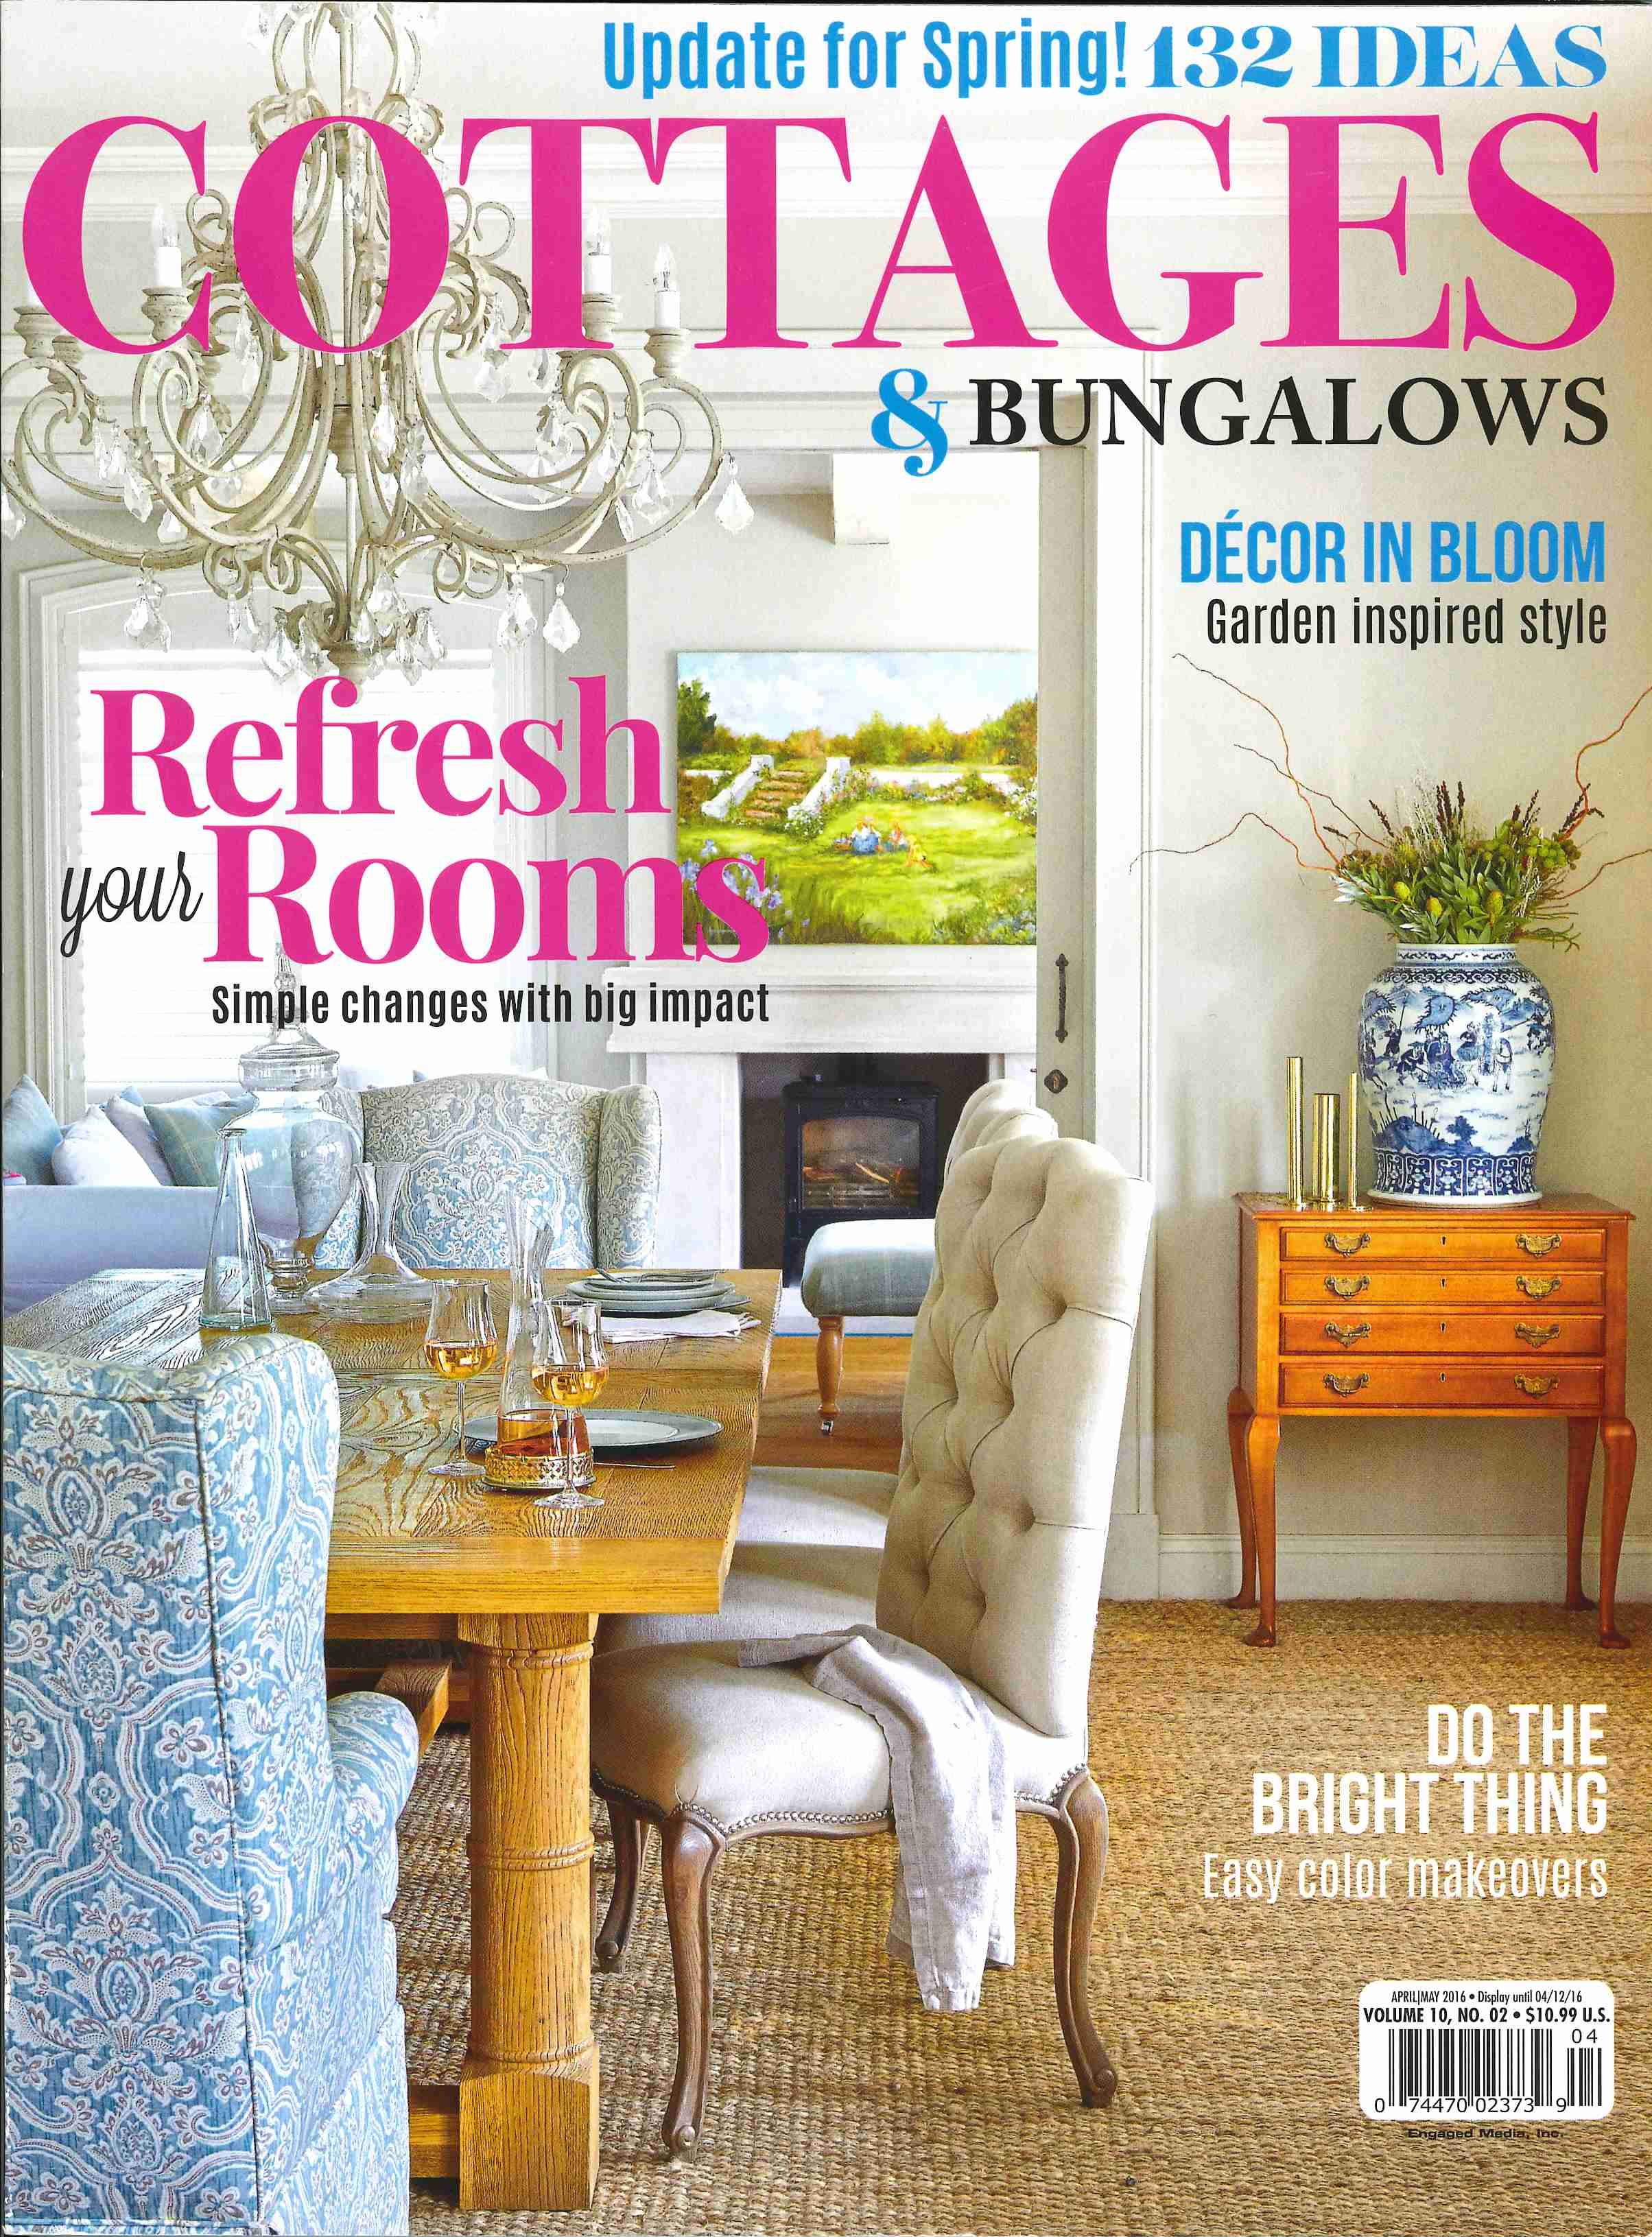 Cottages & Bungalows Cover.jpg